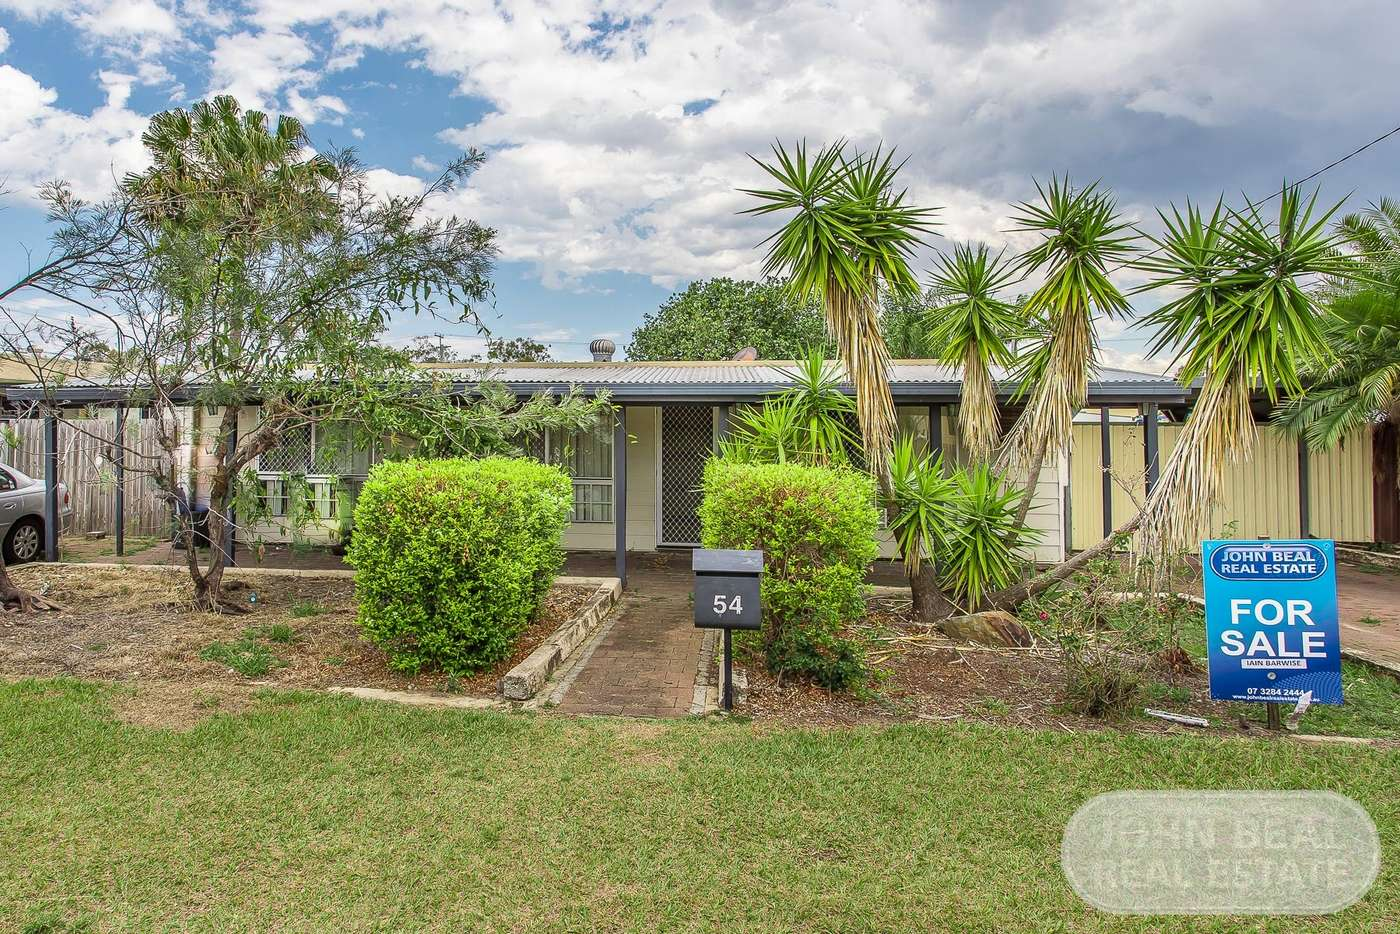 Main view of Homely house listing, 54 Leonie St, Deception Bay QLD 4508